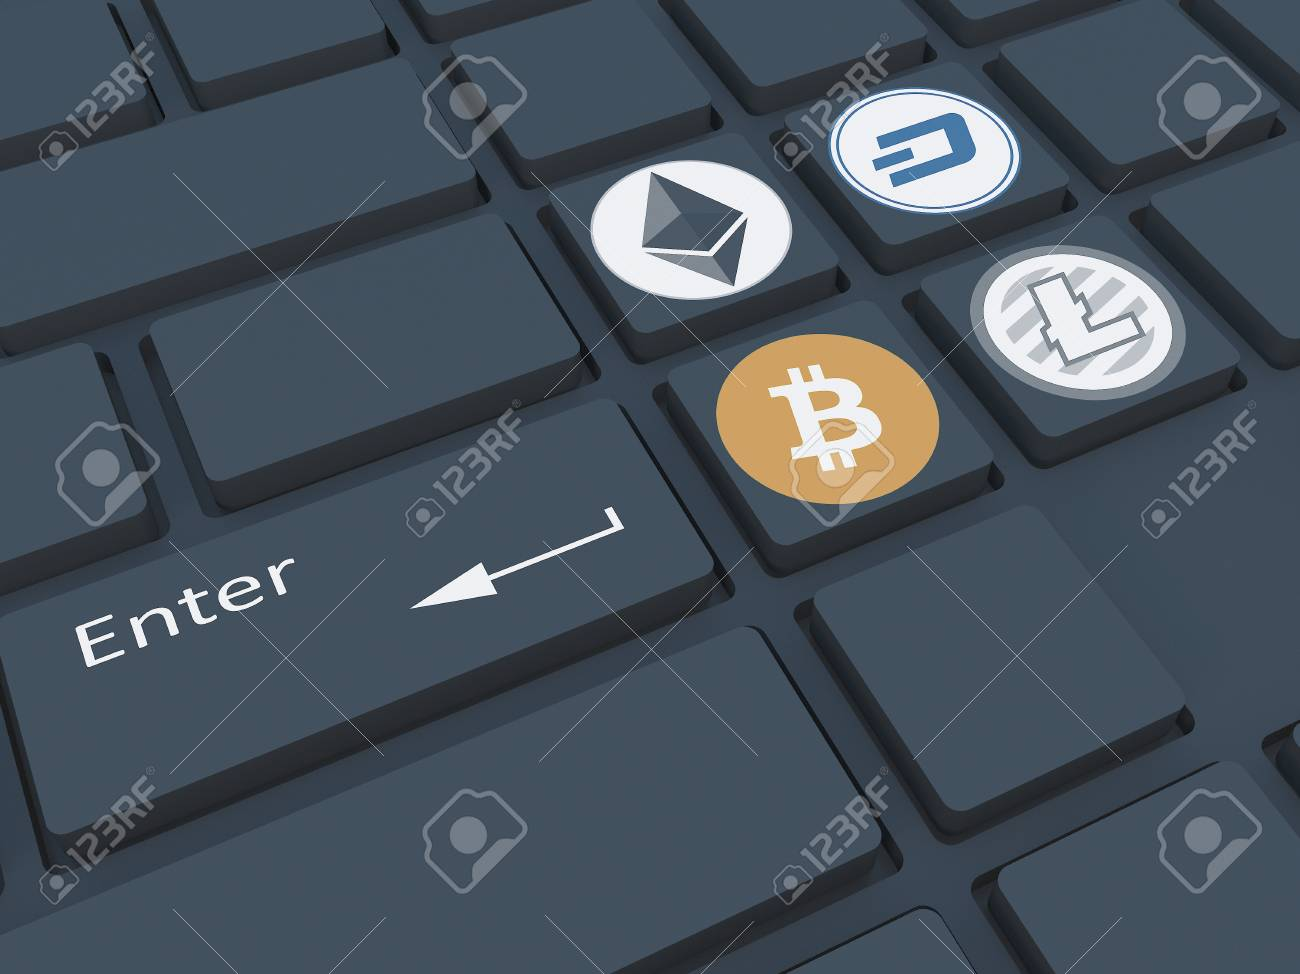 Crypto Currency Keyboard With Symbols Mining Of Crypto Currency